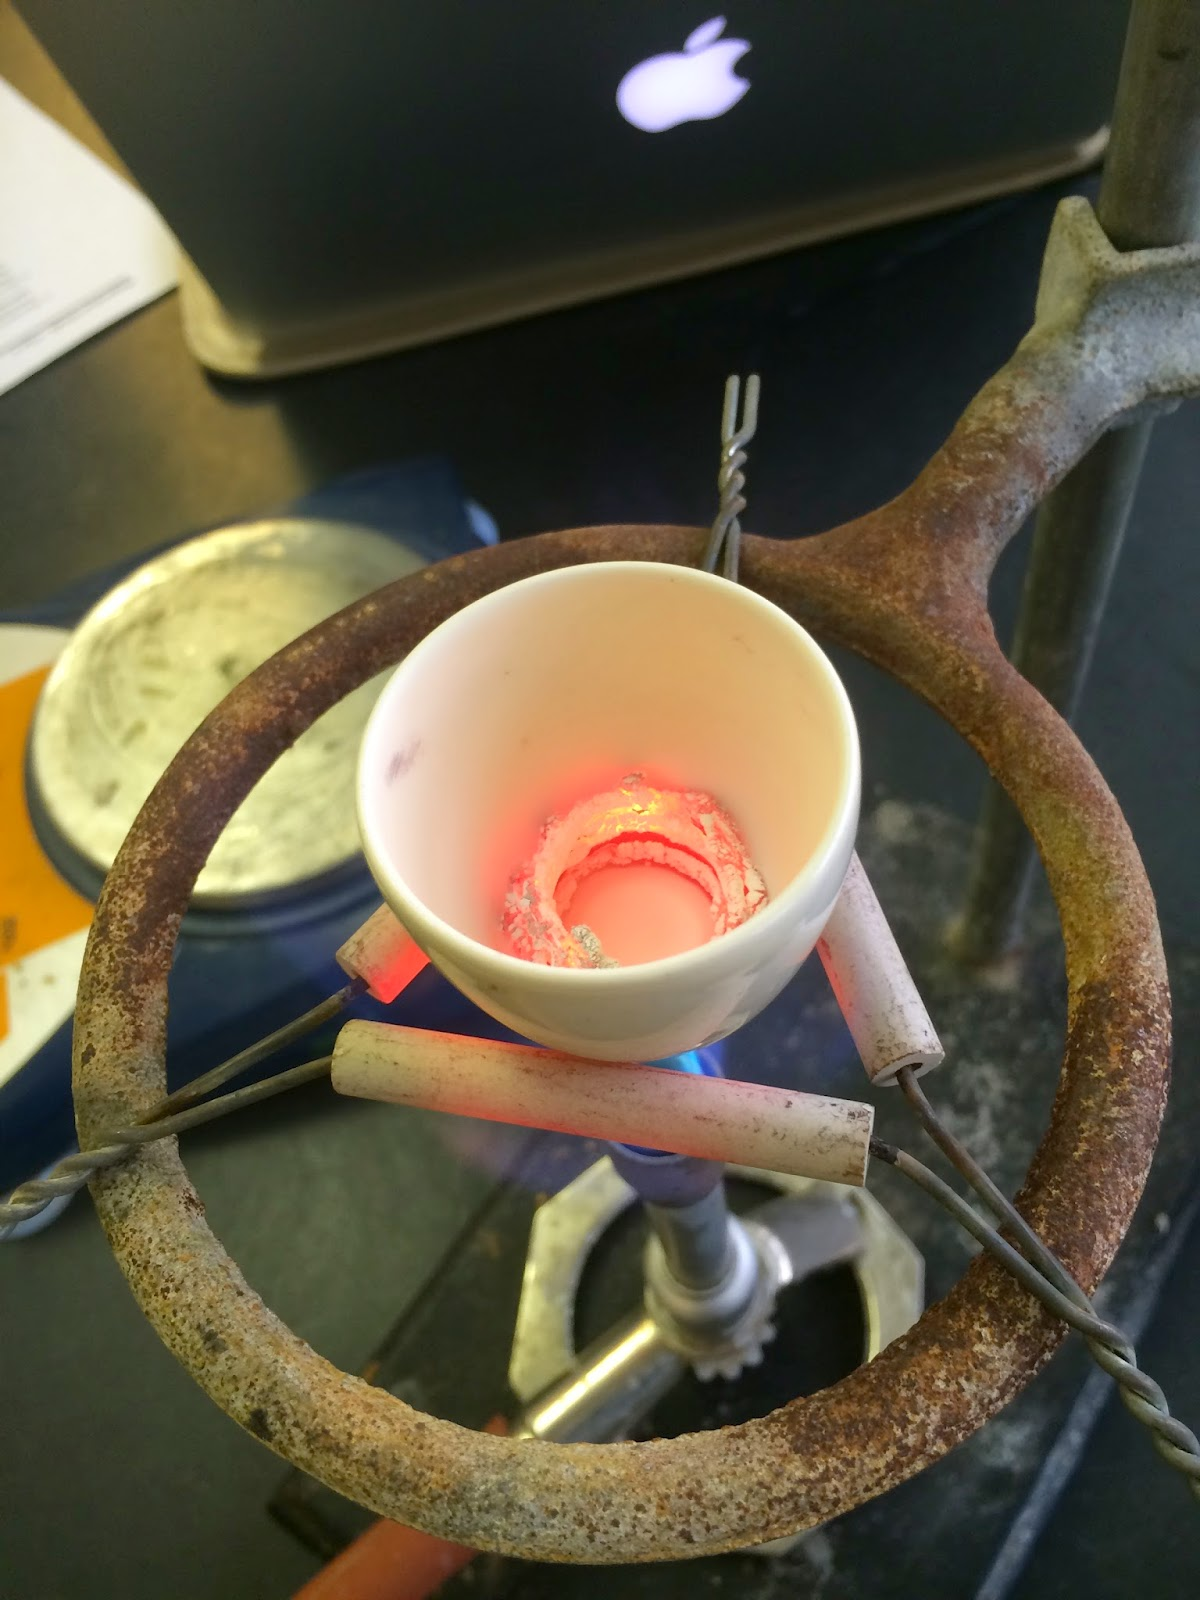 Magnesium Oxide Experiment : The art of teaching science blow lid off magnesium